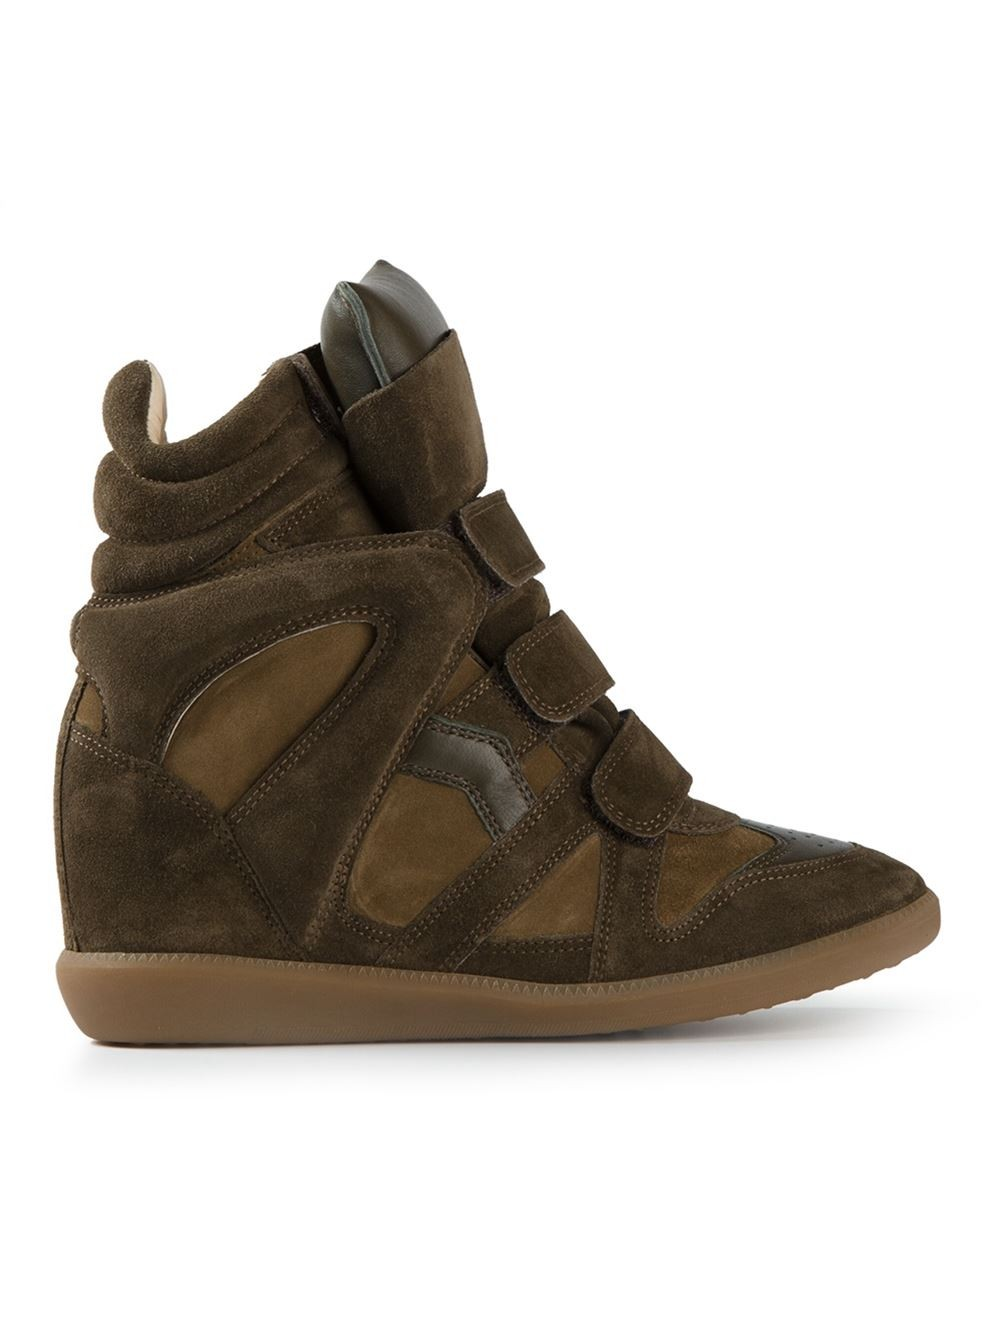 Isabel Marant Beckett Hi-Top Green Women's Wedge Sneakers